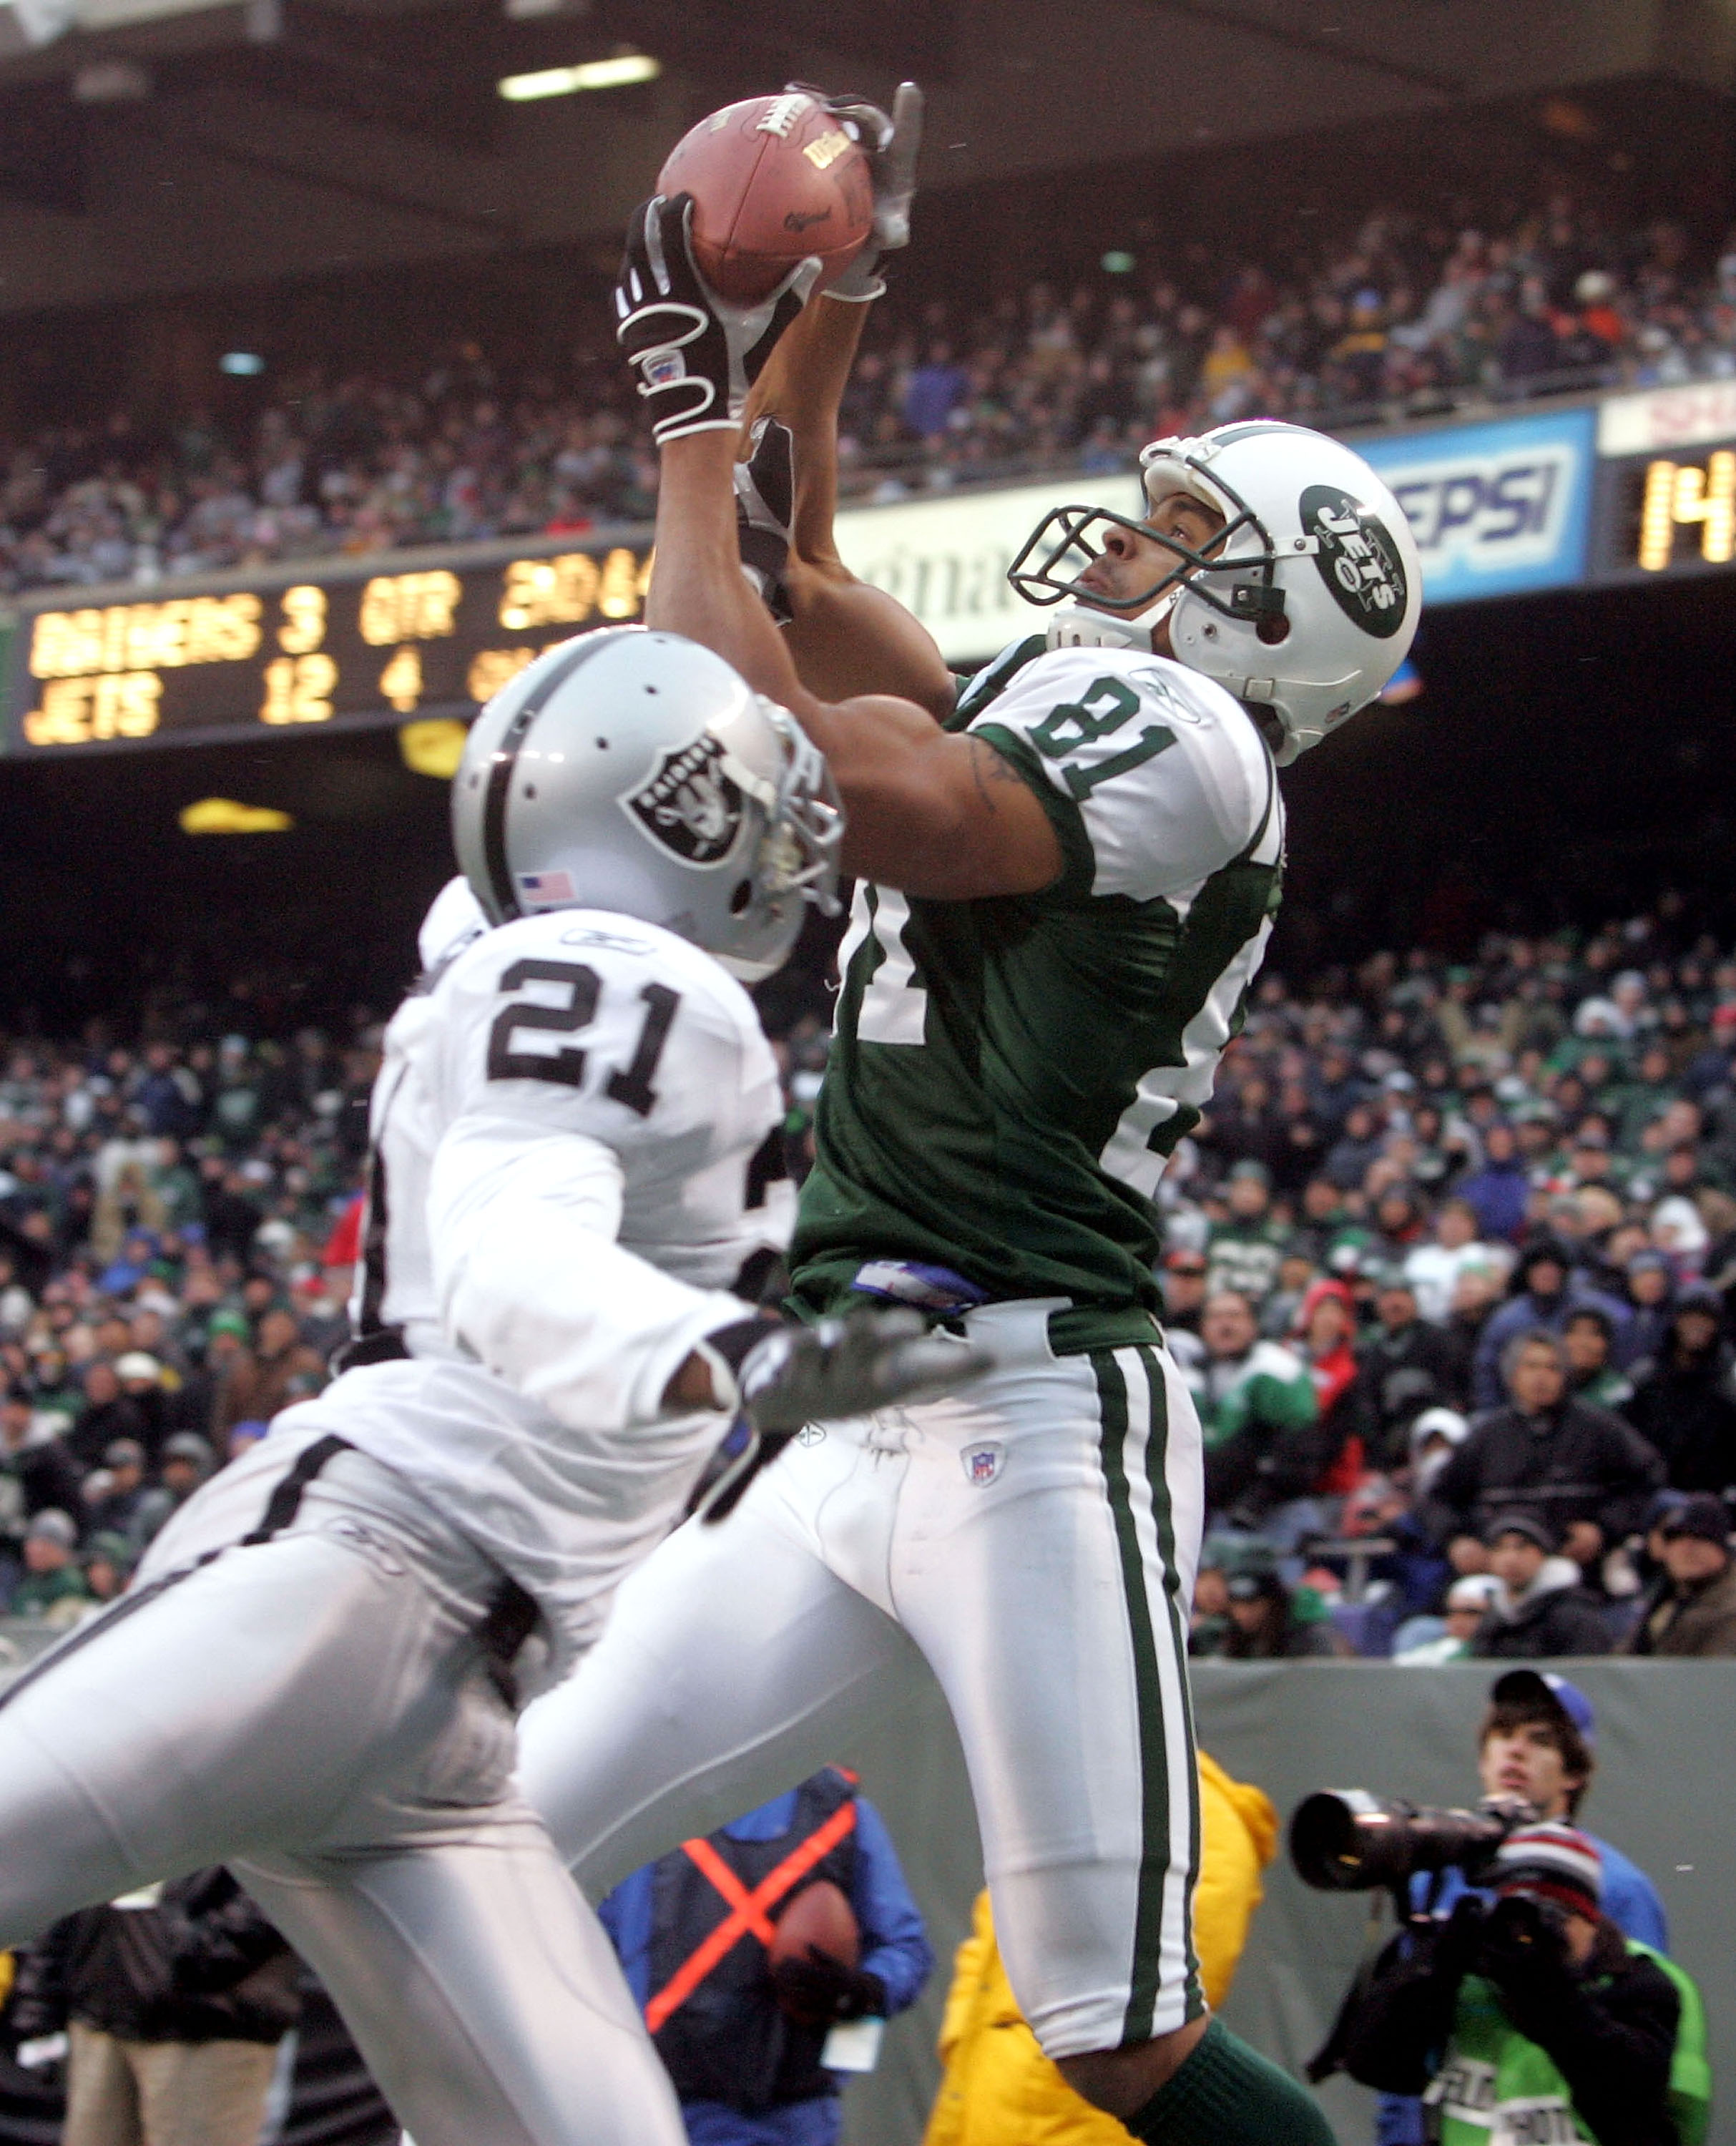 EAST RUTHERFORD, NJ - DECEMBER 11:  Wide receiver Justin McCareins #81 of the New York Jets catches a touchdown pass in the fourth quarter against cornerback Nnamdi Asomugha #21 of the Oakland Raiders on December 11, 2005 at Giants Stadium in East Rutherf